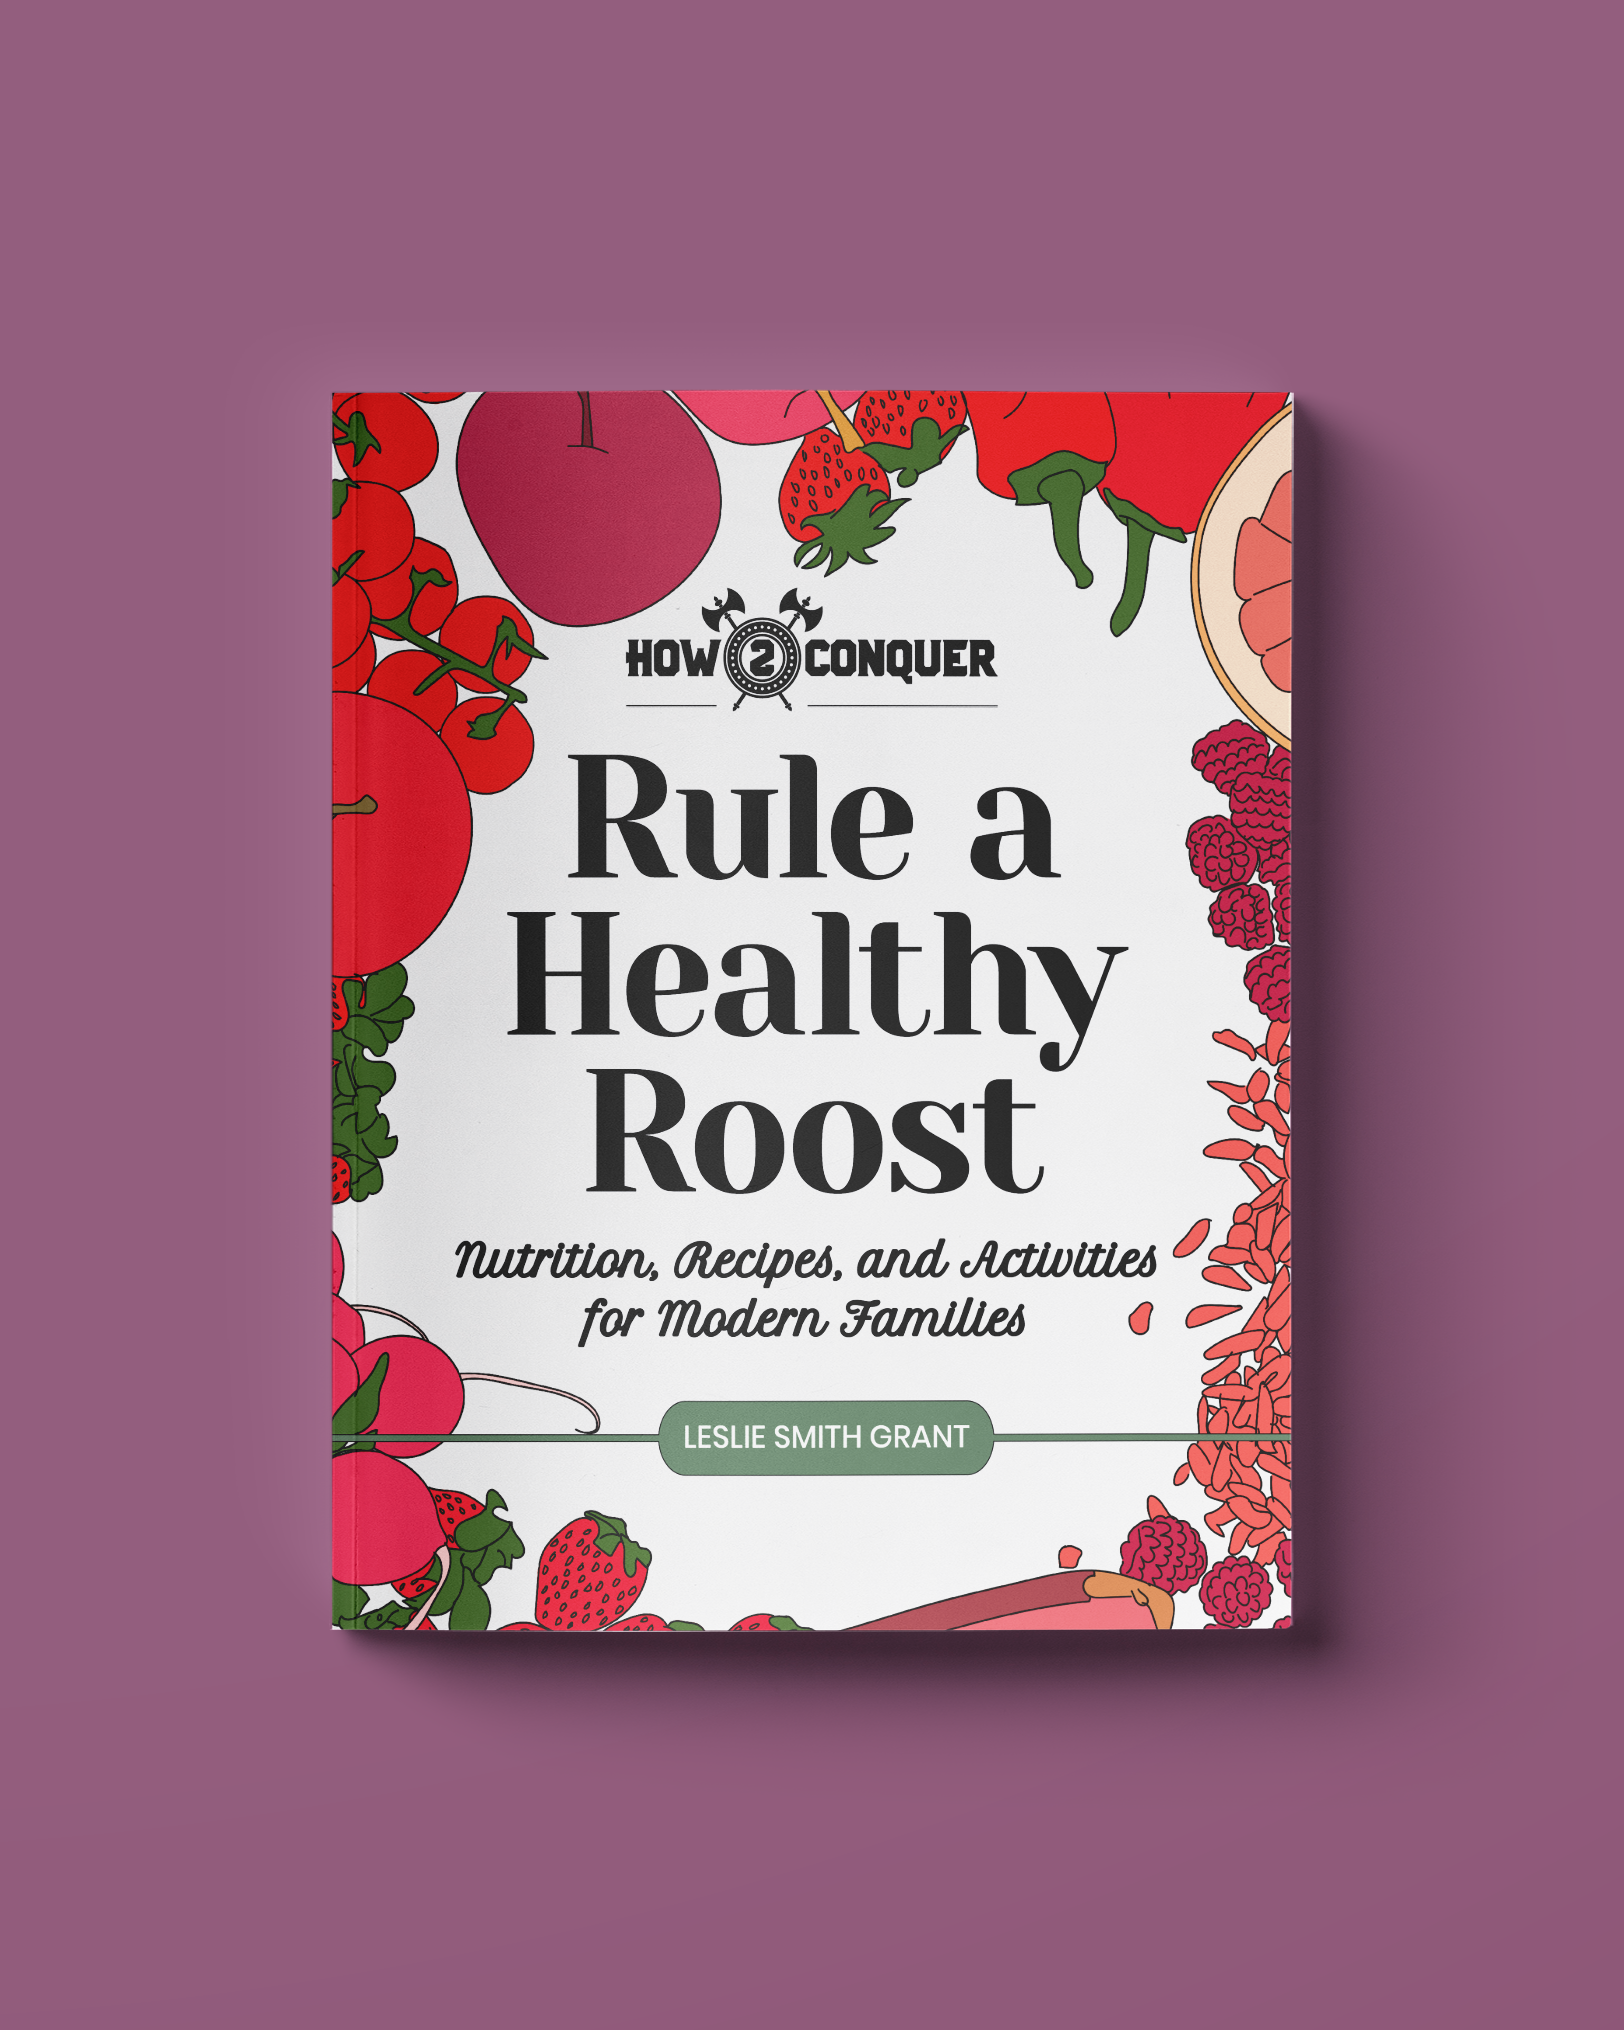 Rule a Healthy Roost by Leslie Smith Grant